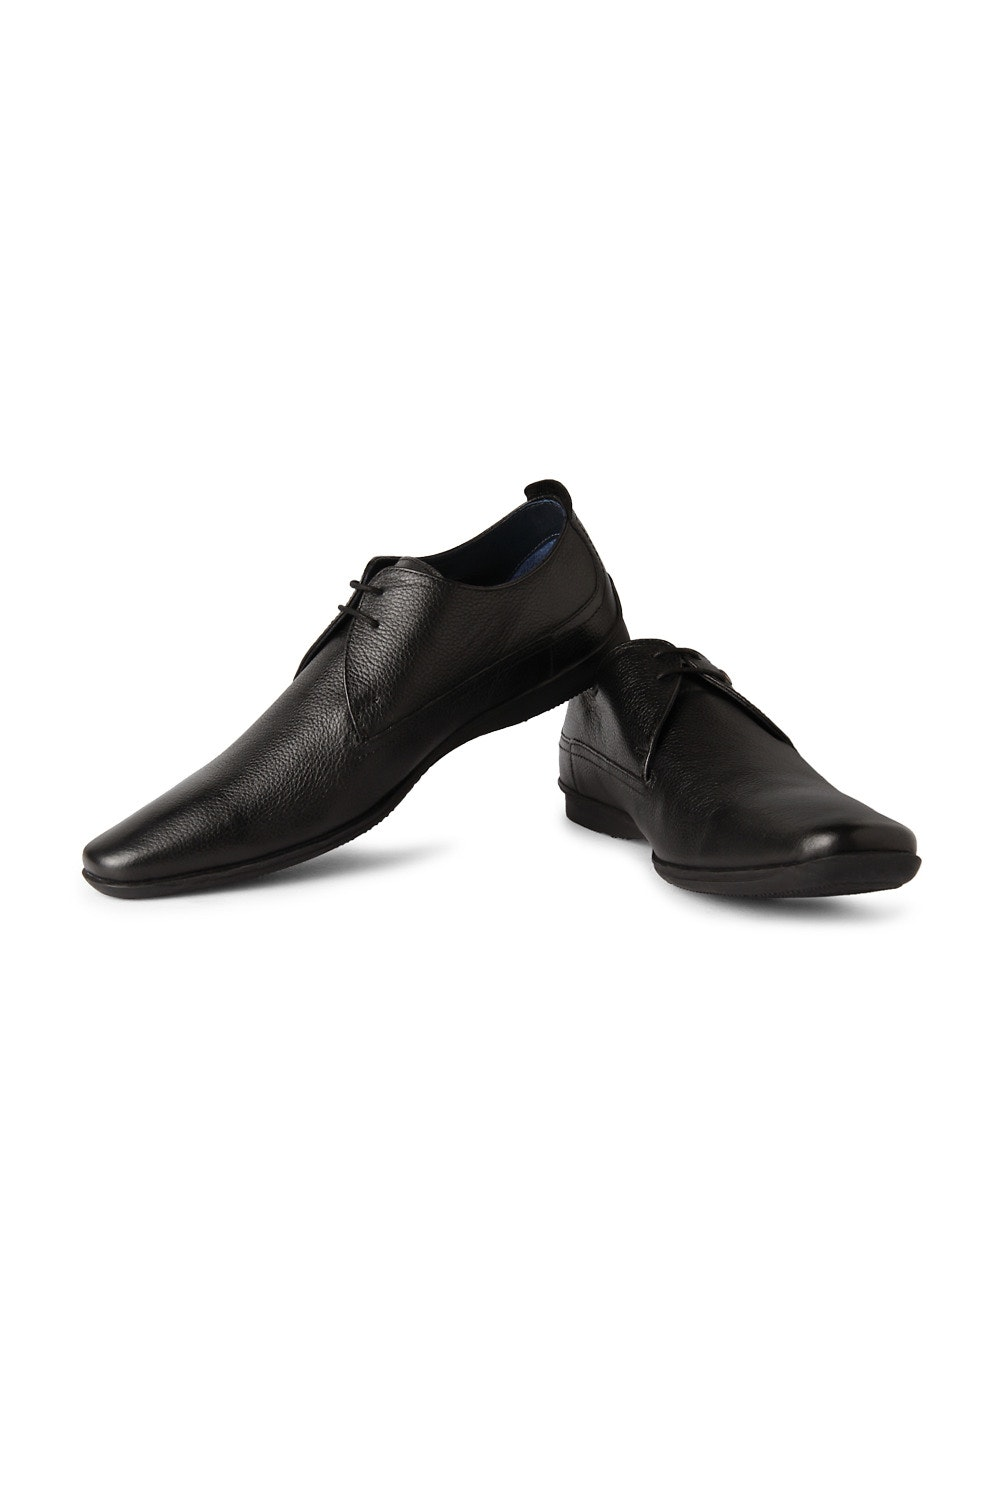 136a0467406 Louis Philippe Footwear-Buy Louis Philippe Men Shoes